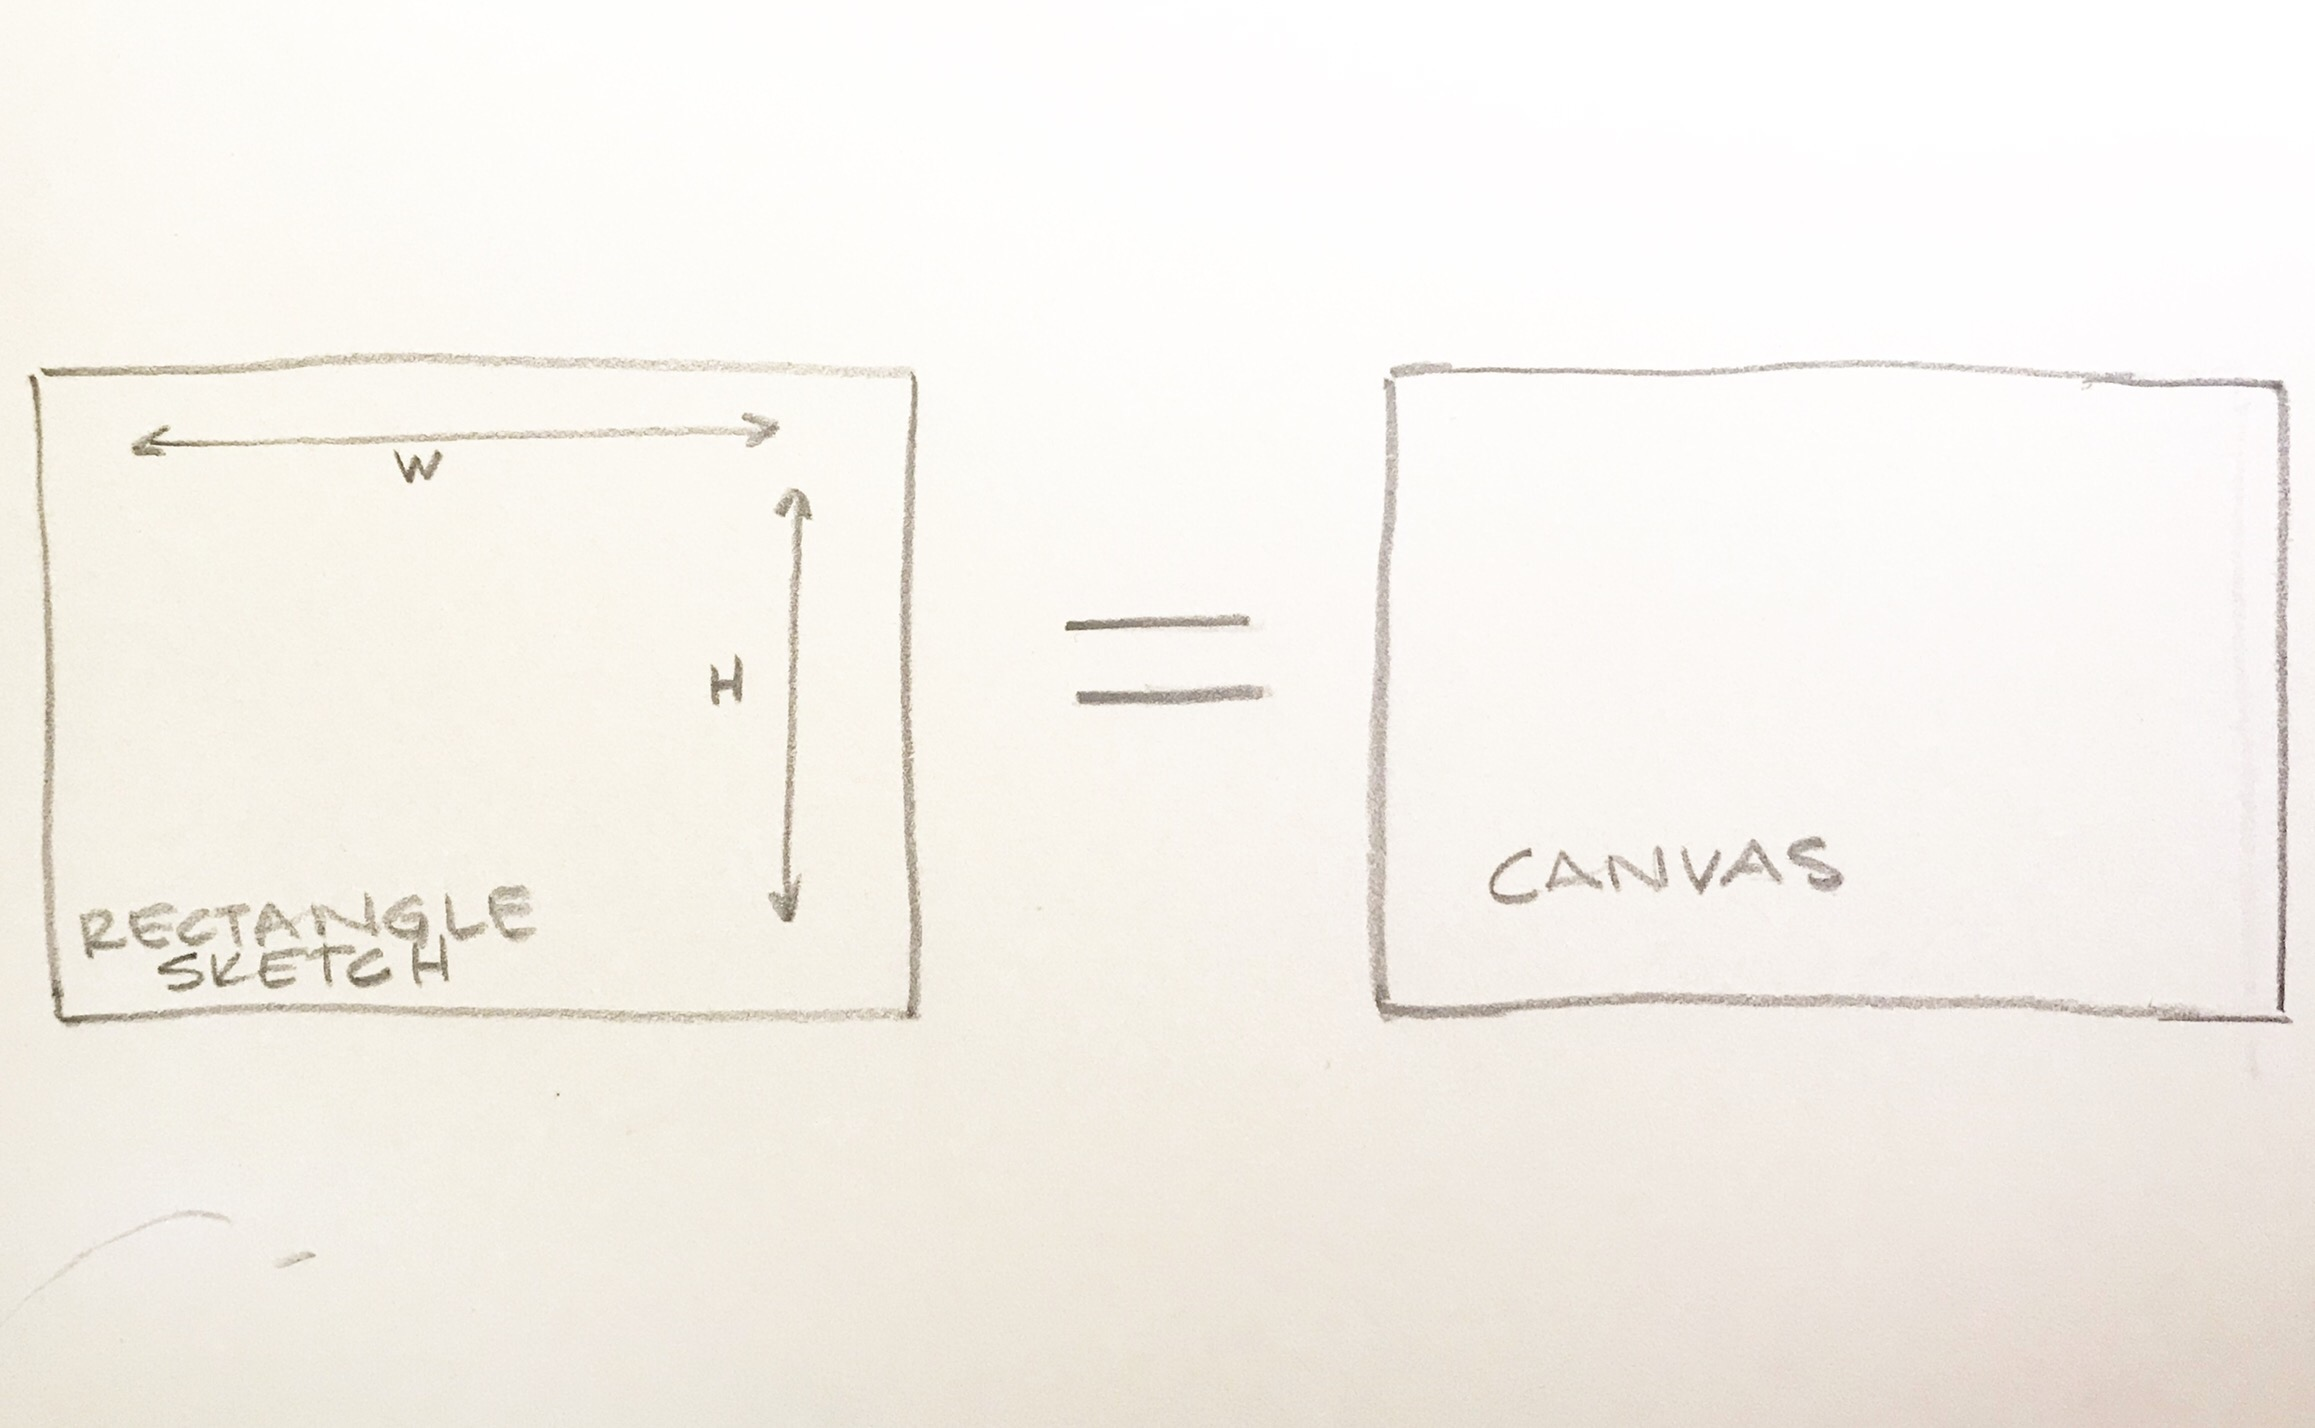 Proportions - Be sure your rectangles are the same proportion (width to height) as the canvas or other surface you will be painting on. You can eyeball it.